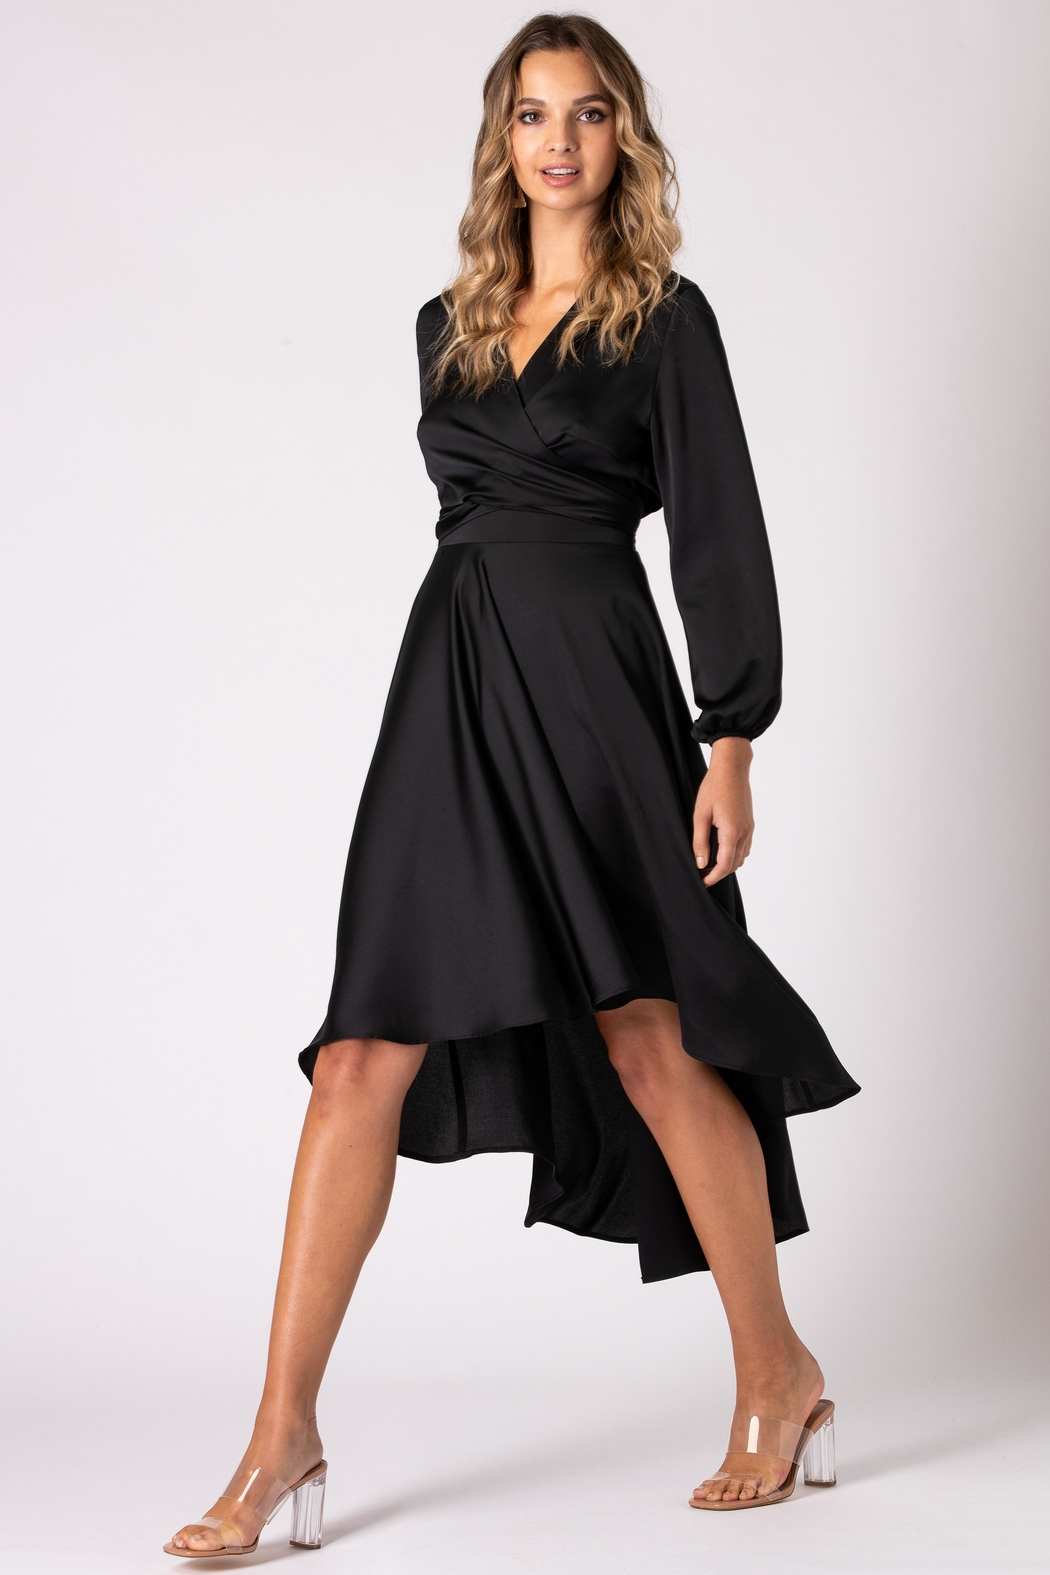 Urban Touch Black Dip Hem Wrap Front Dress With Long Sleeves - Front Full Image